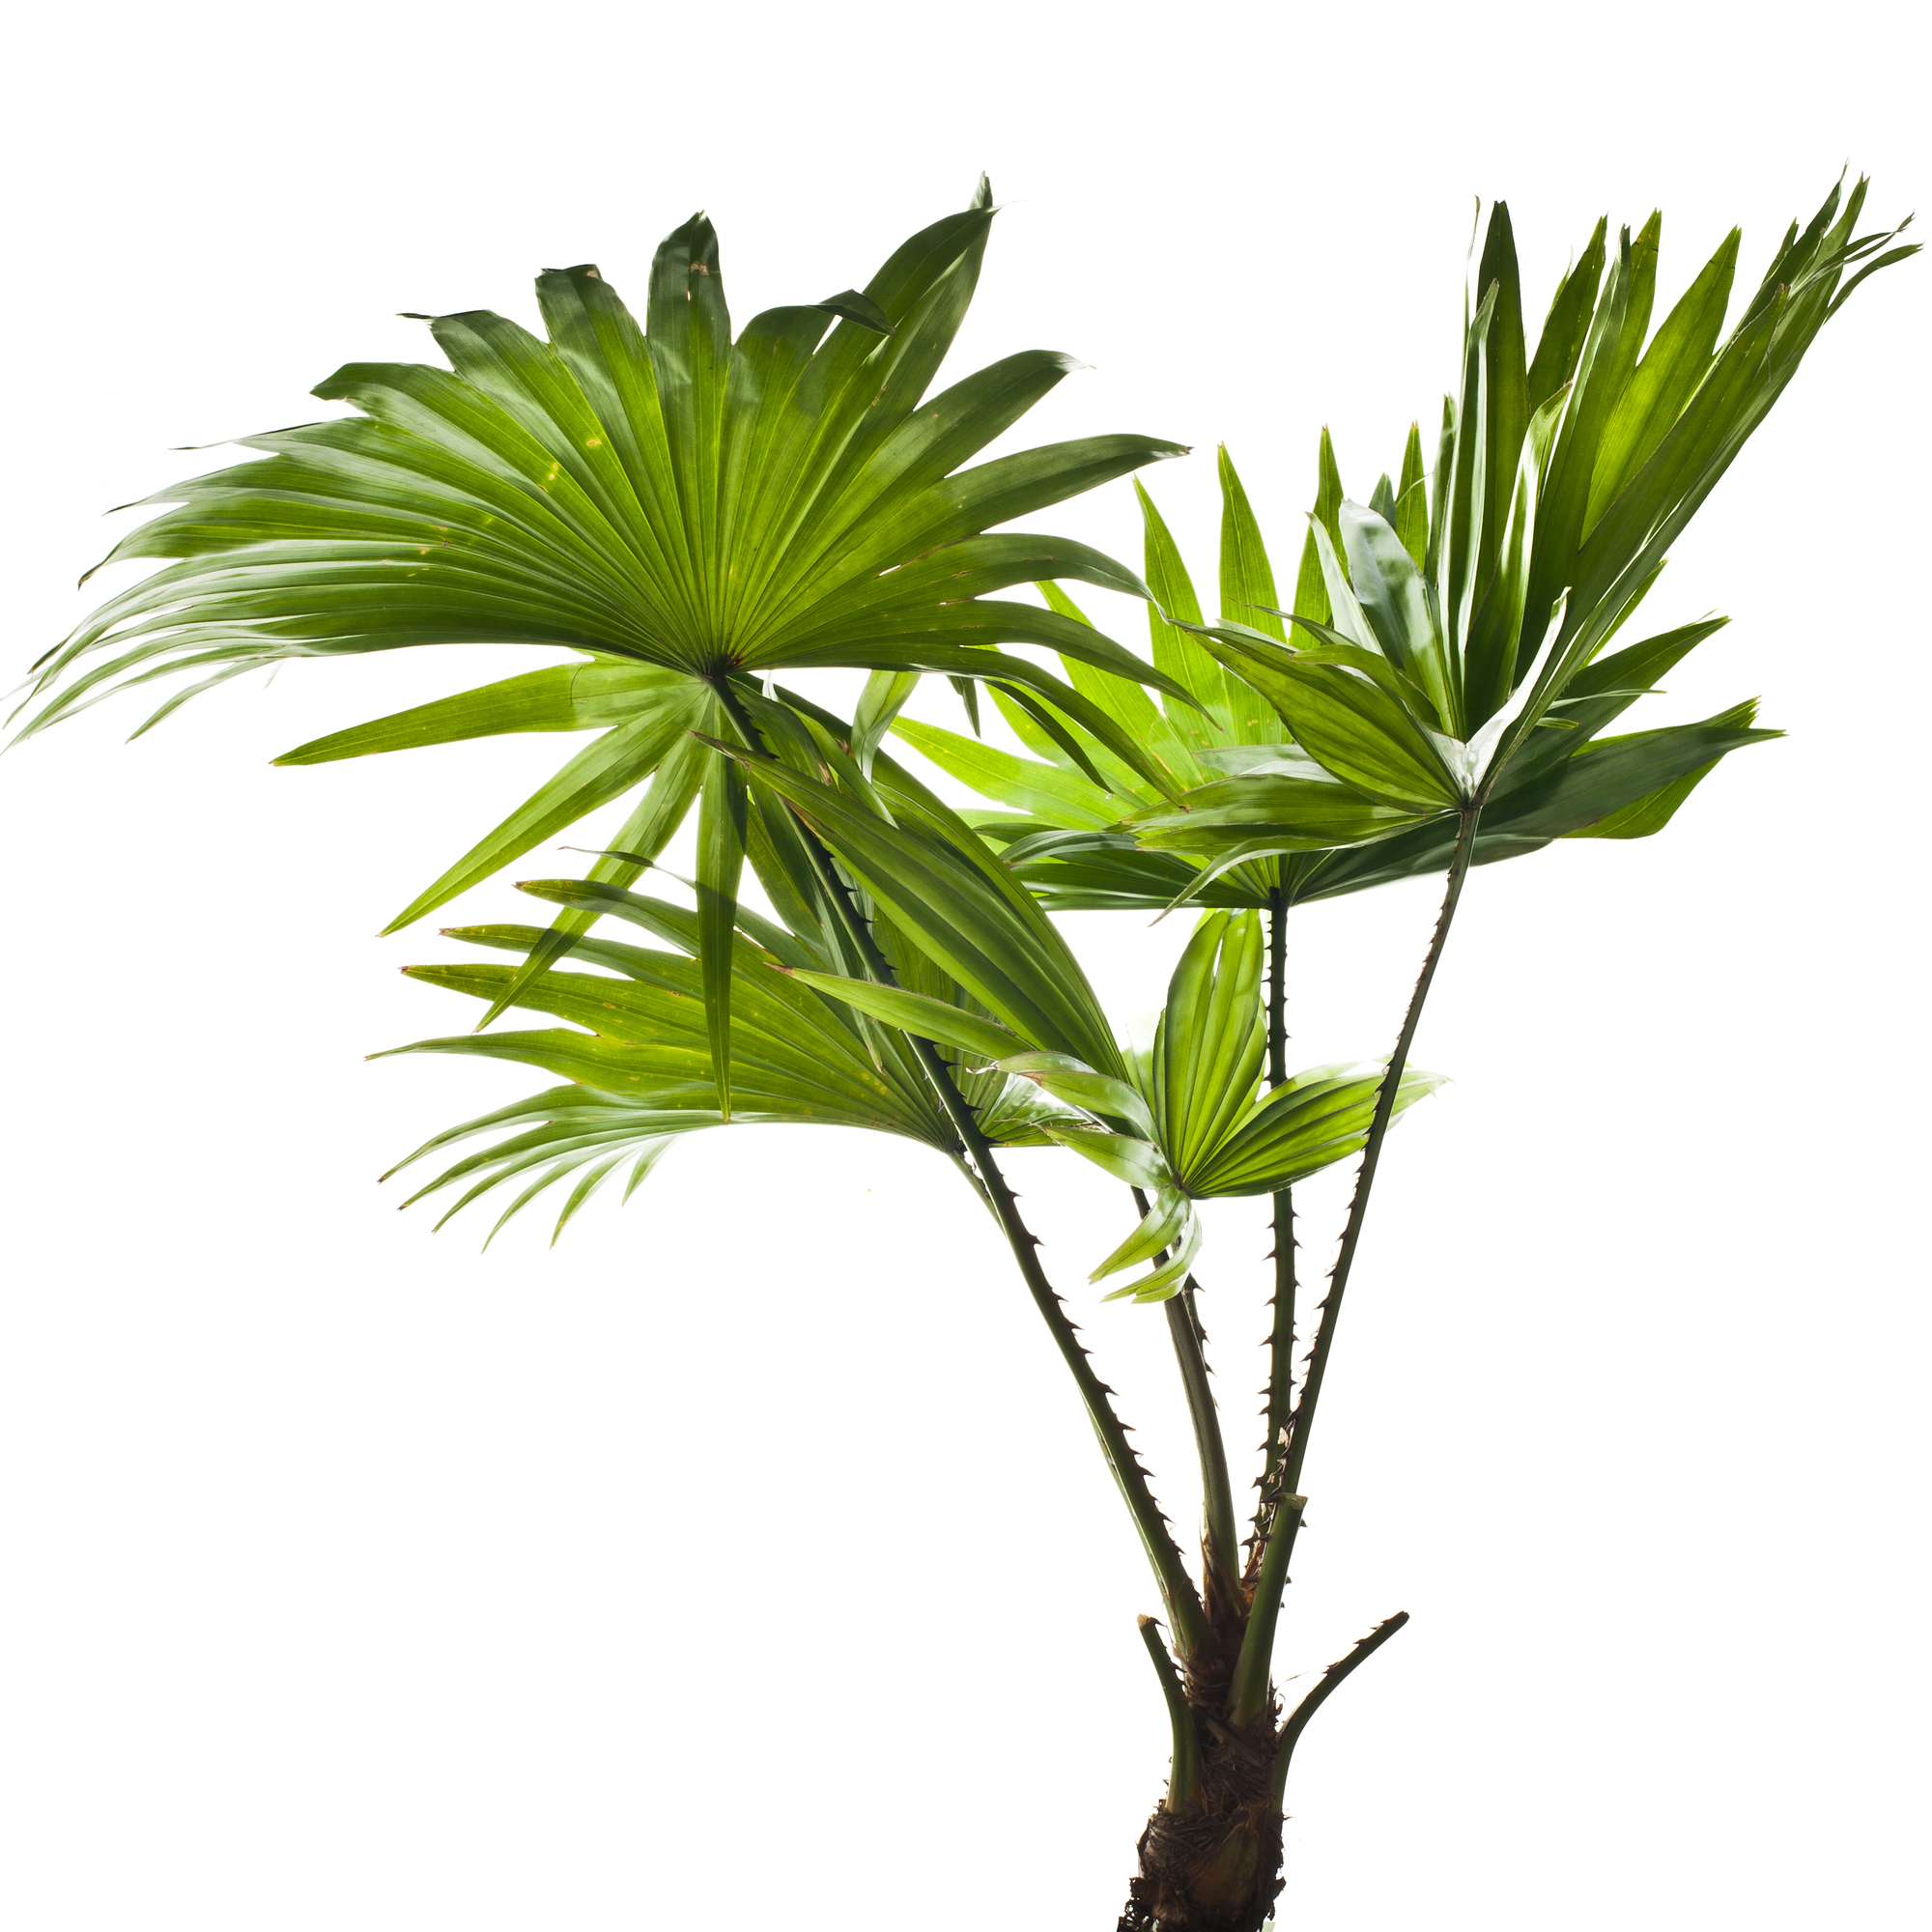 2000x2000 Thoughtful Reasons To Give A Tropical Plant As A Christmas Gift